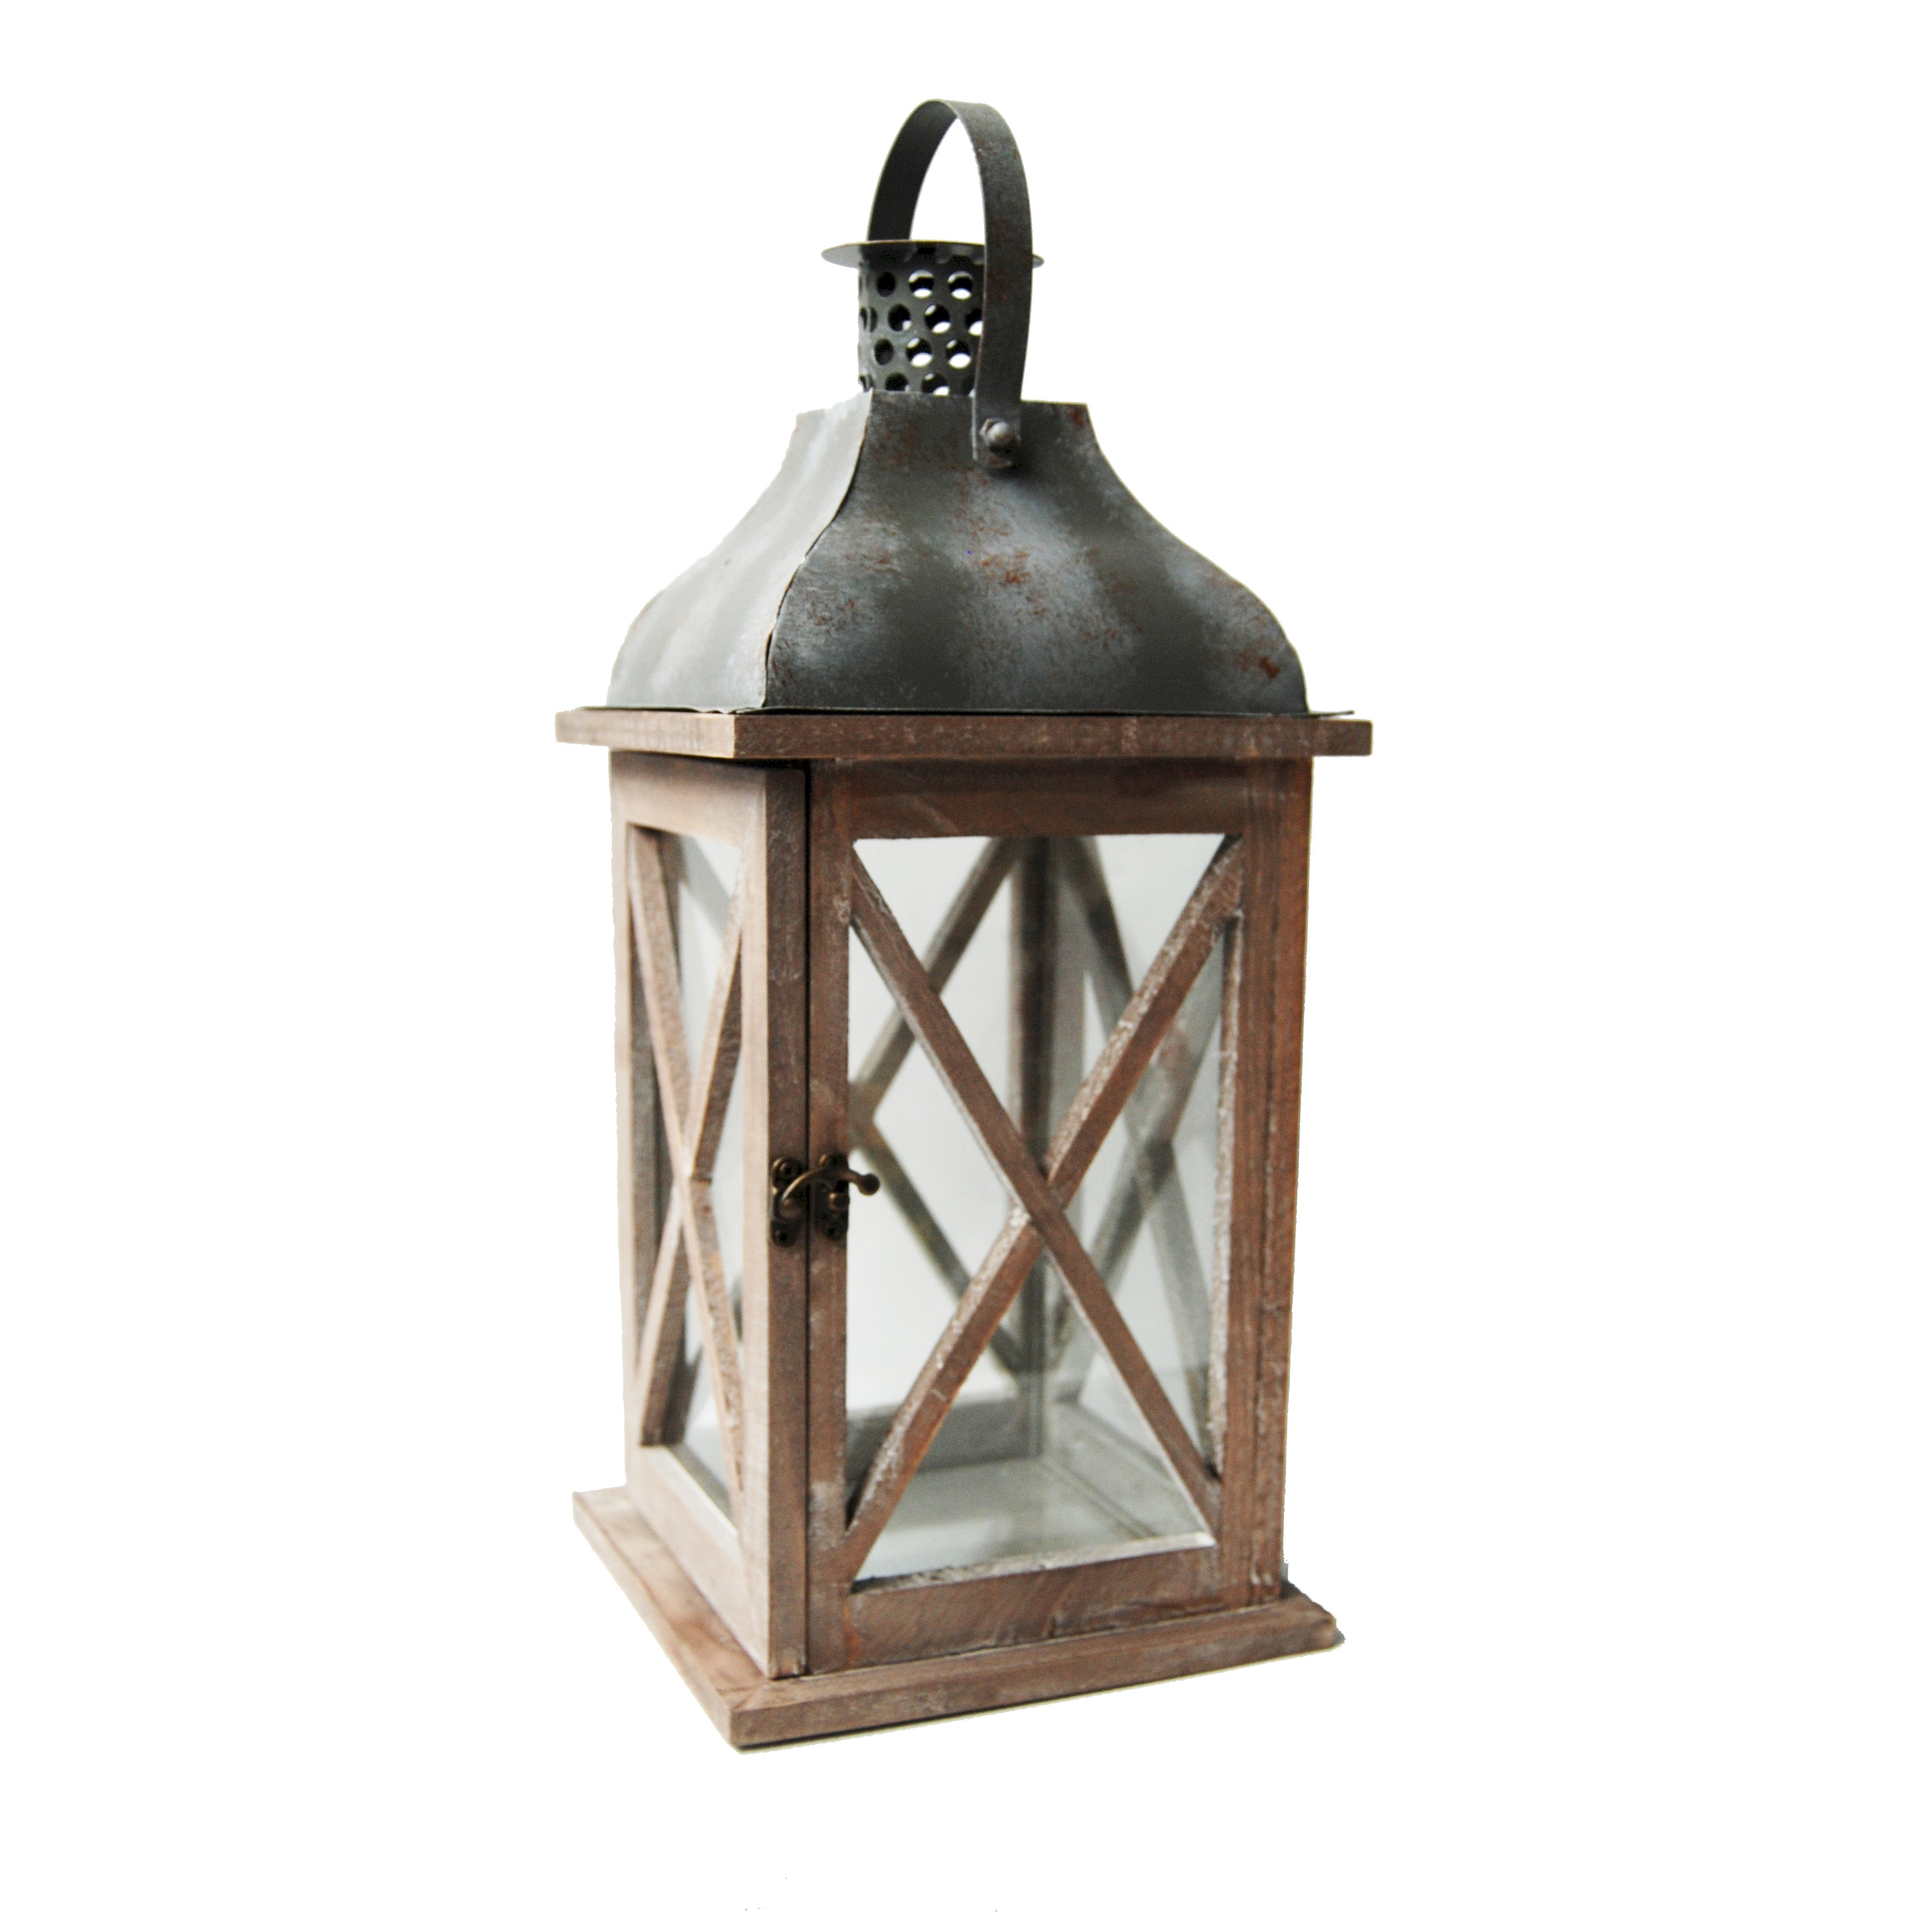 WOOD LANTERN w/TIN ROOF